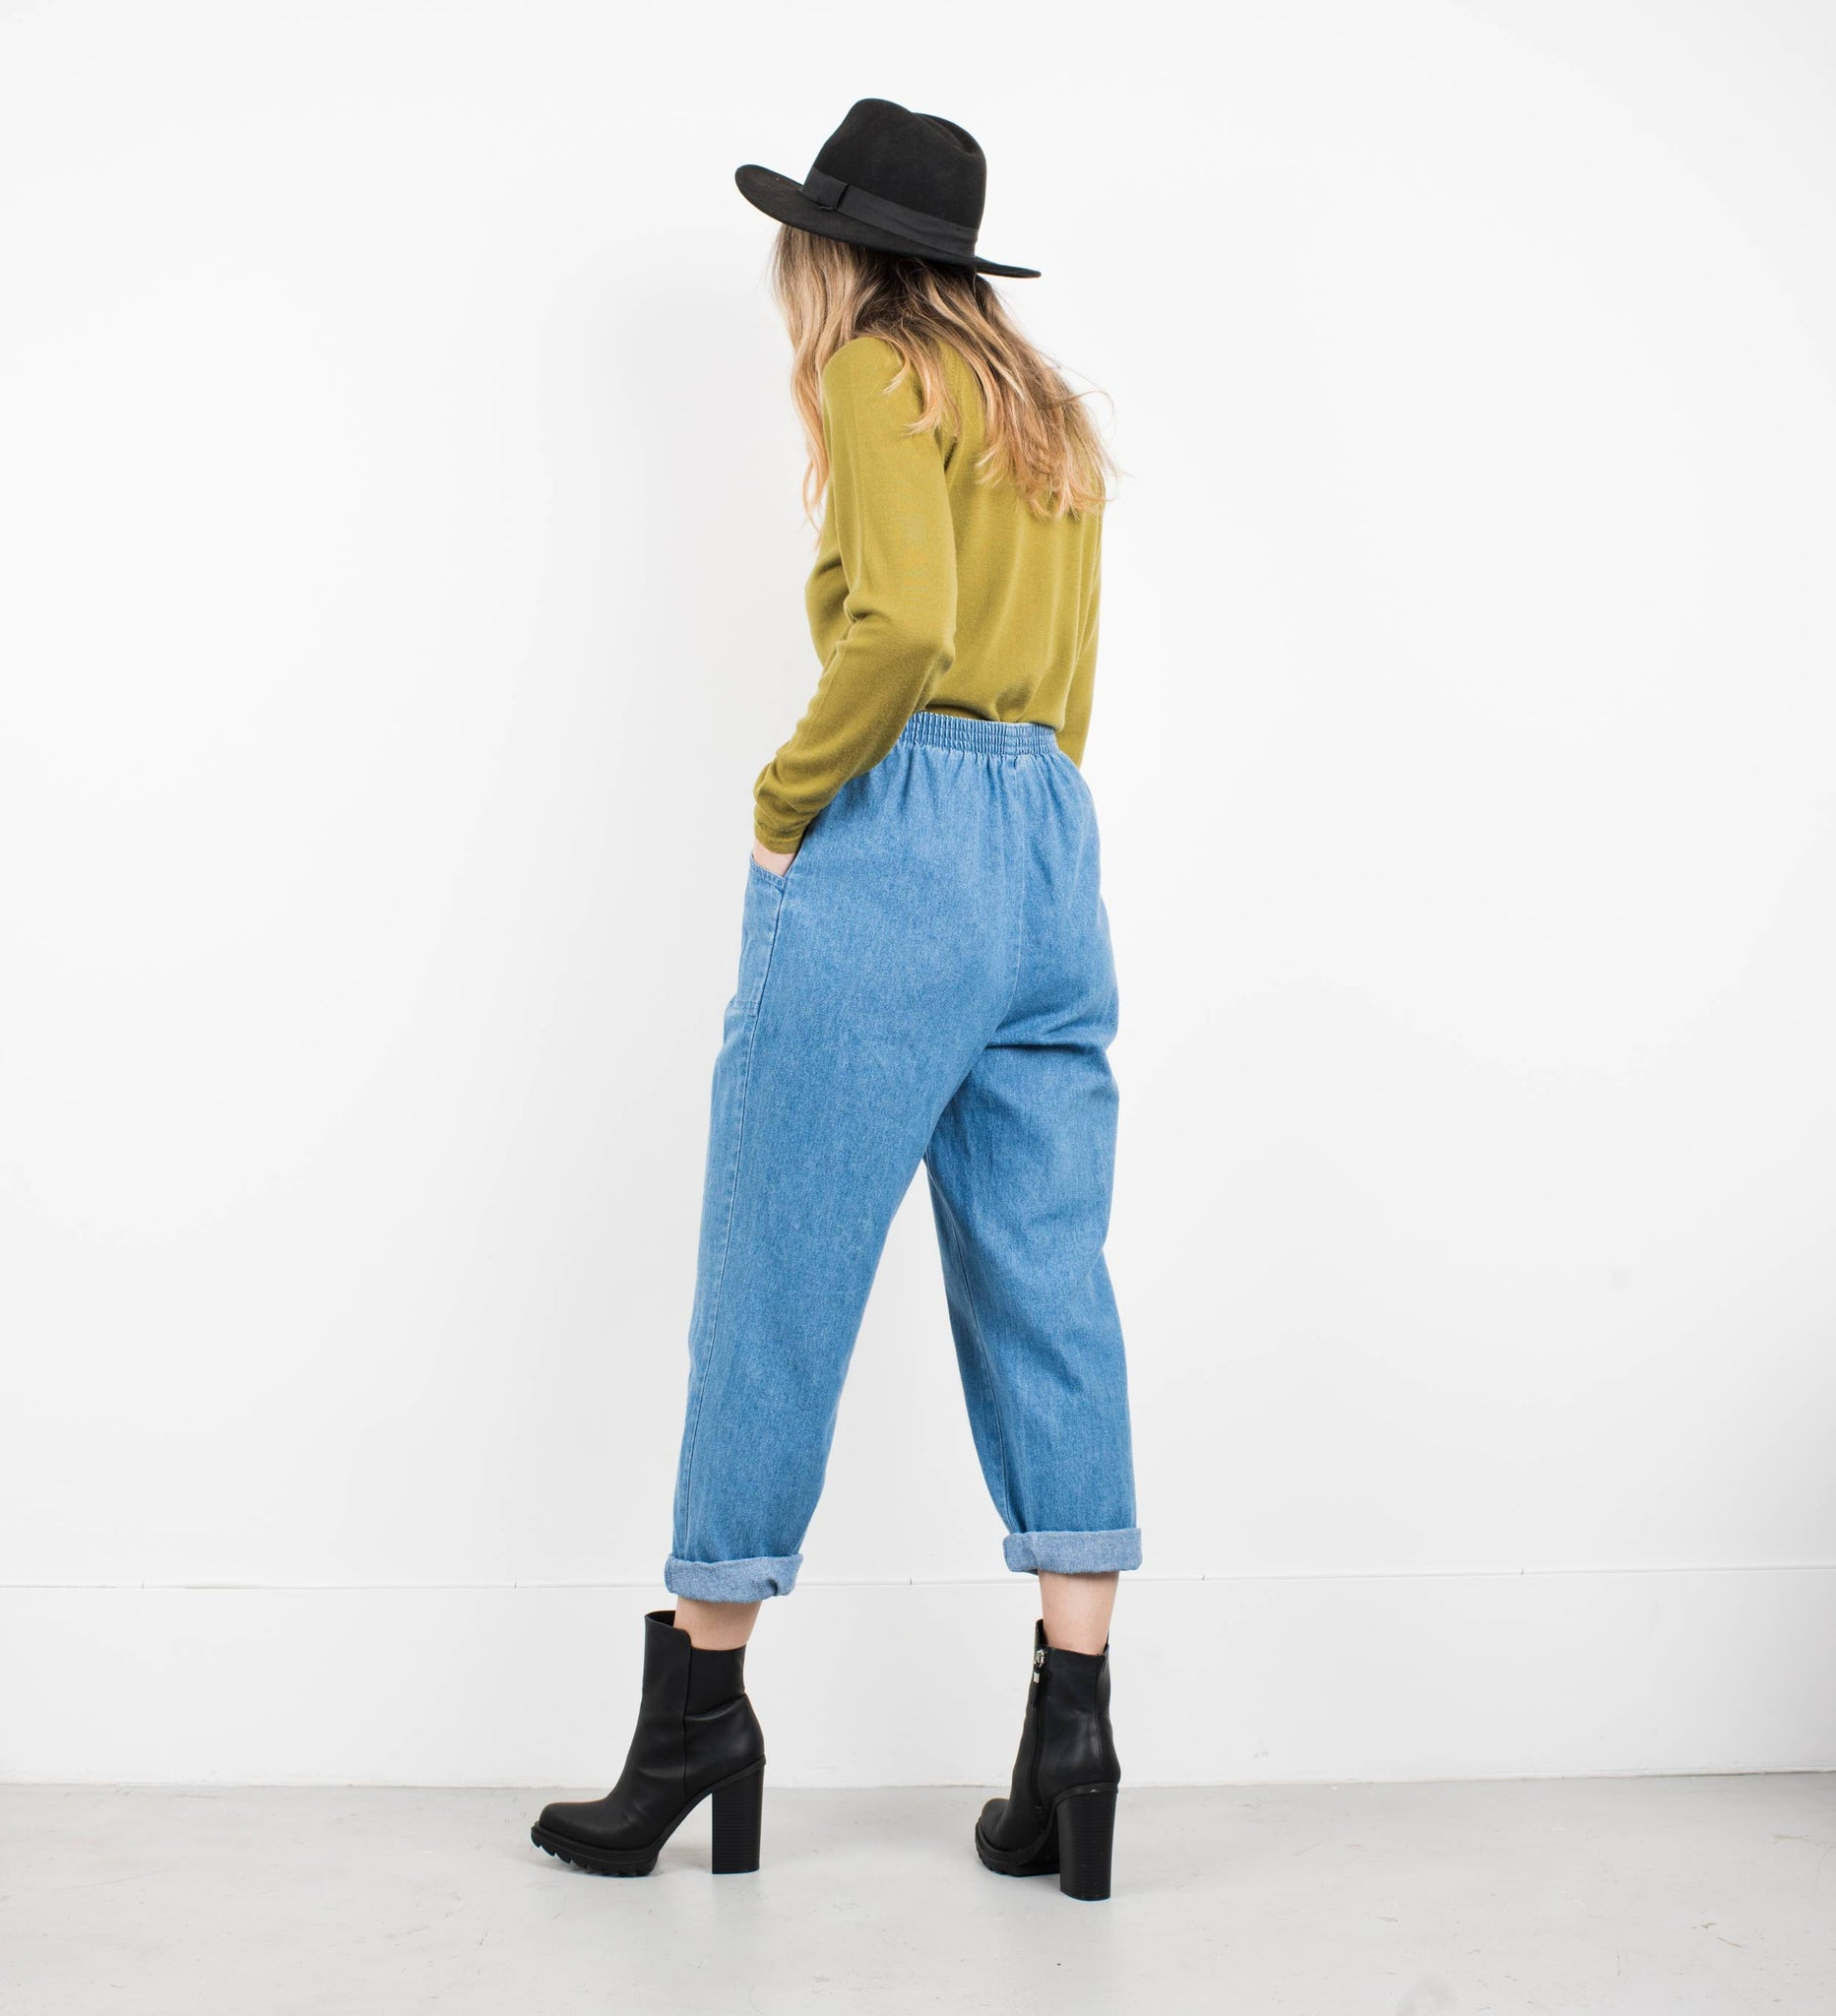 Vintage Stretched Denim Elastic Waist Denim Pants / S/M - Closed Caption